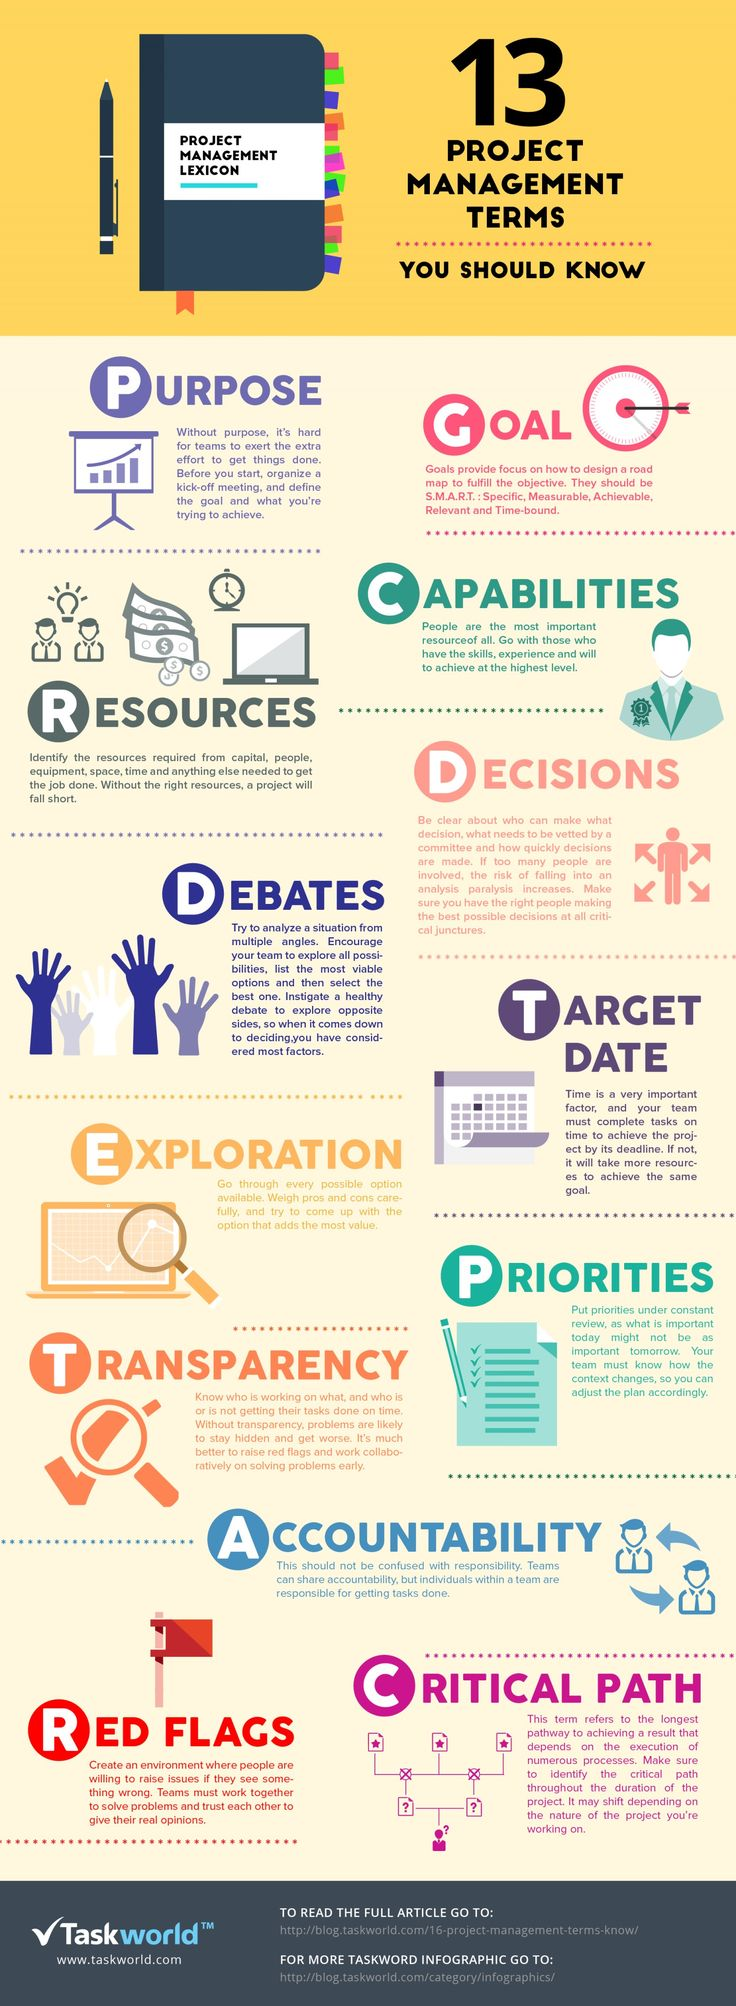 13 Project Management Terms You Should Know Infographic